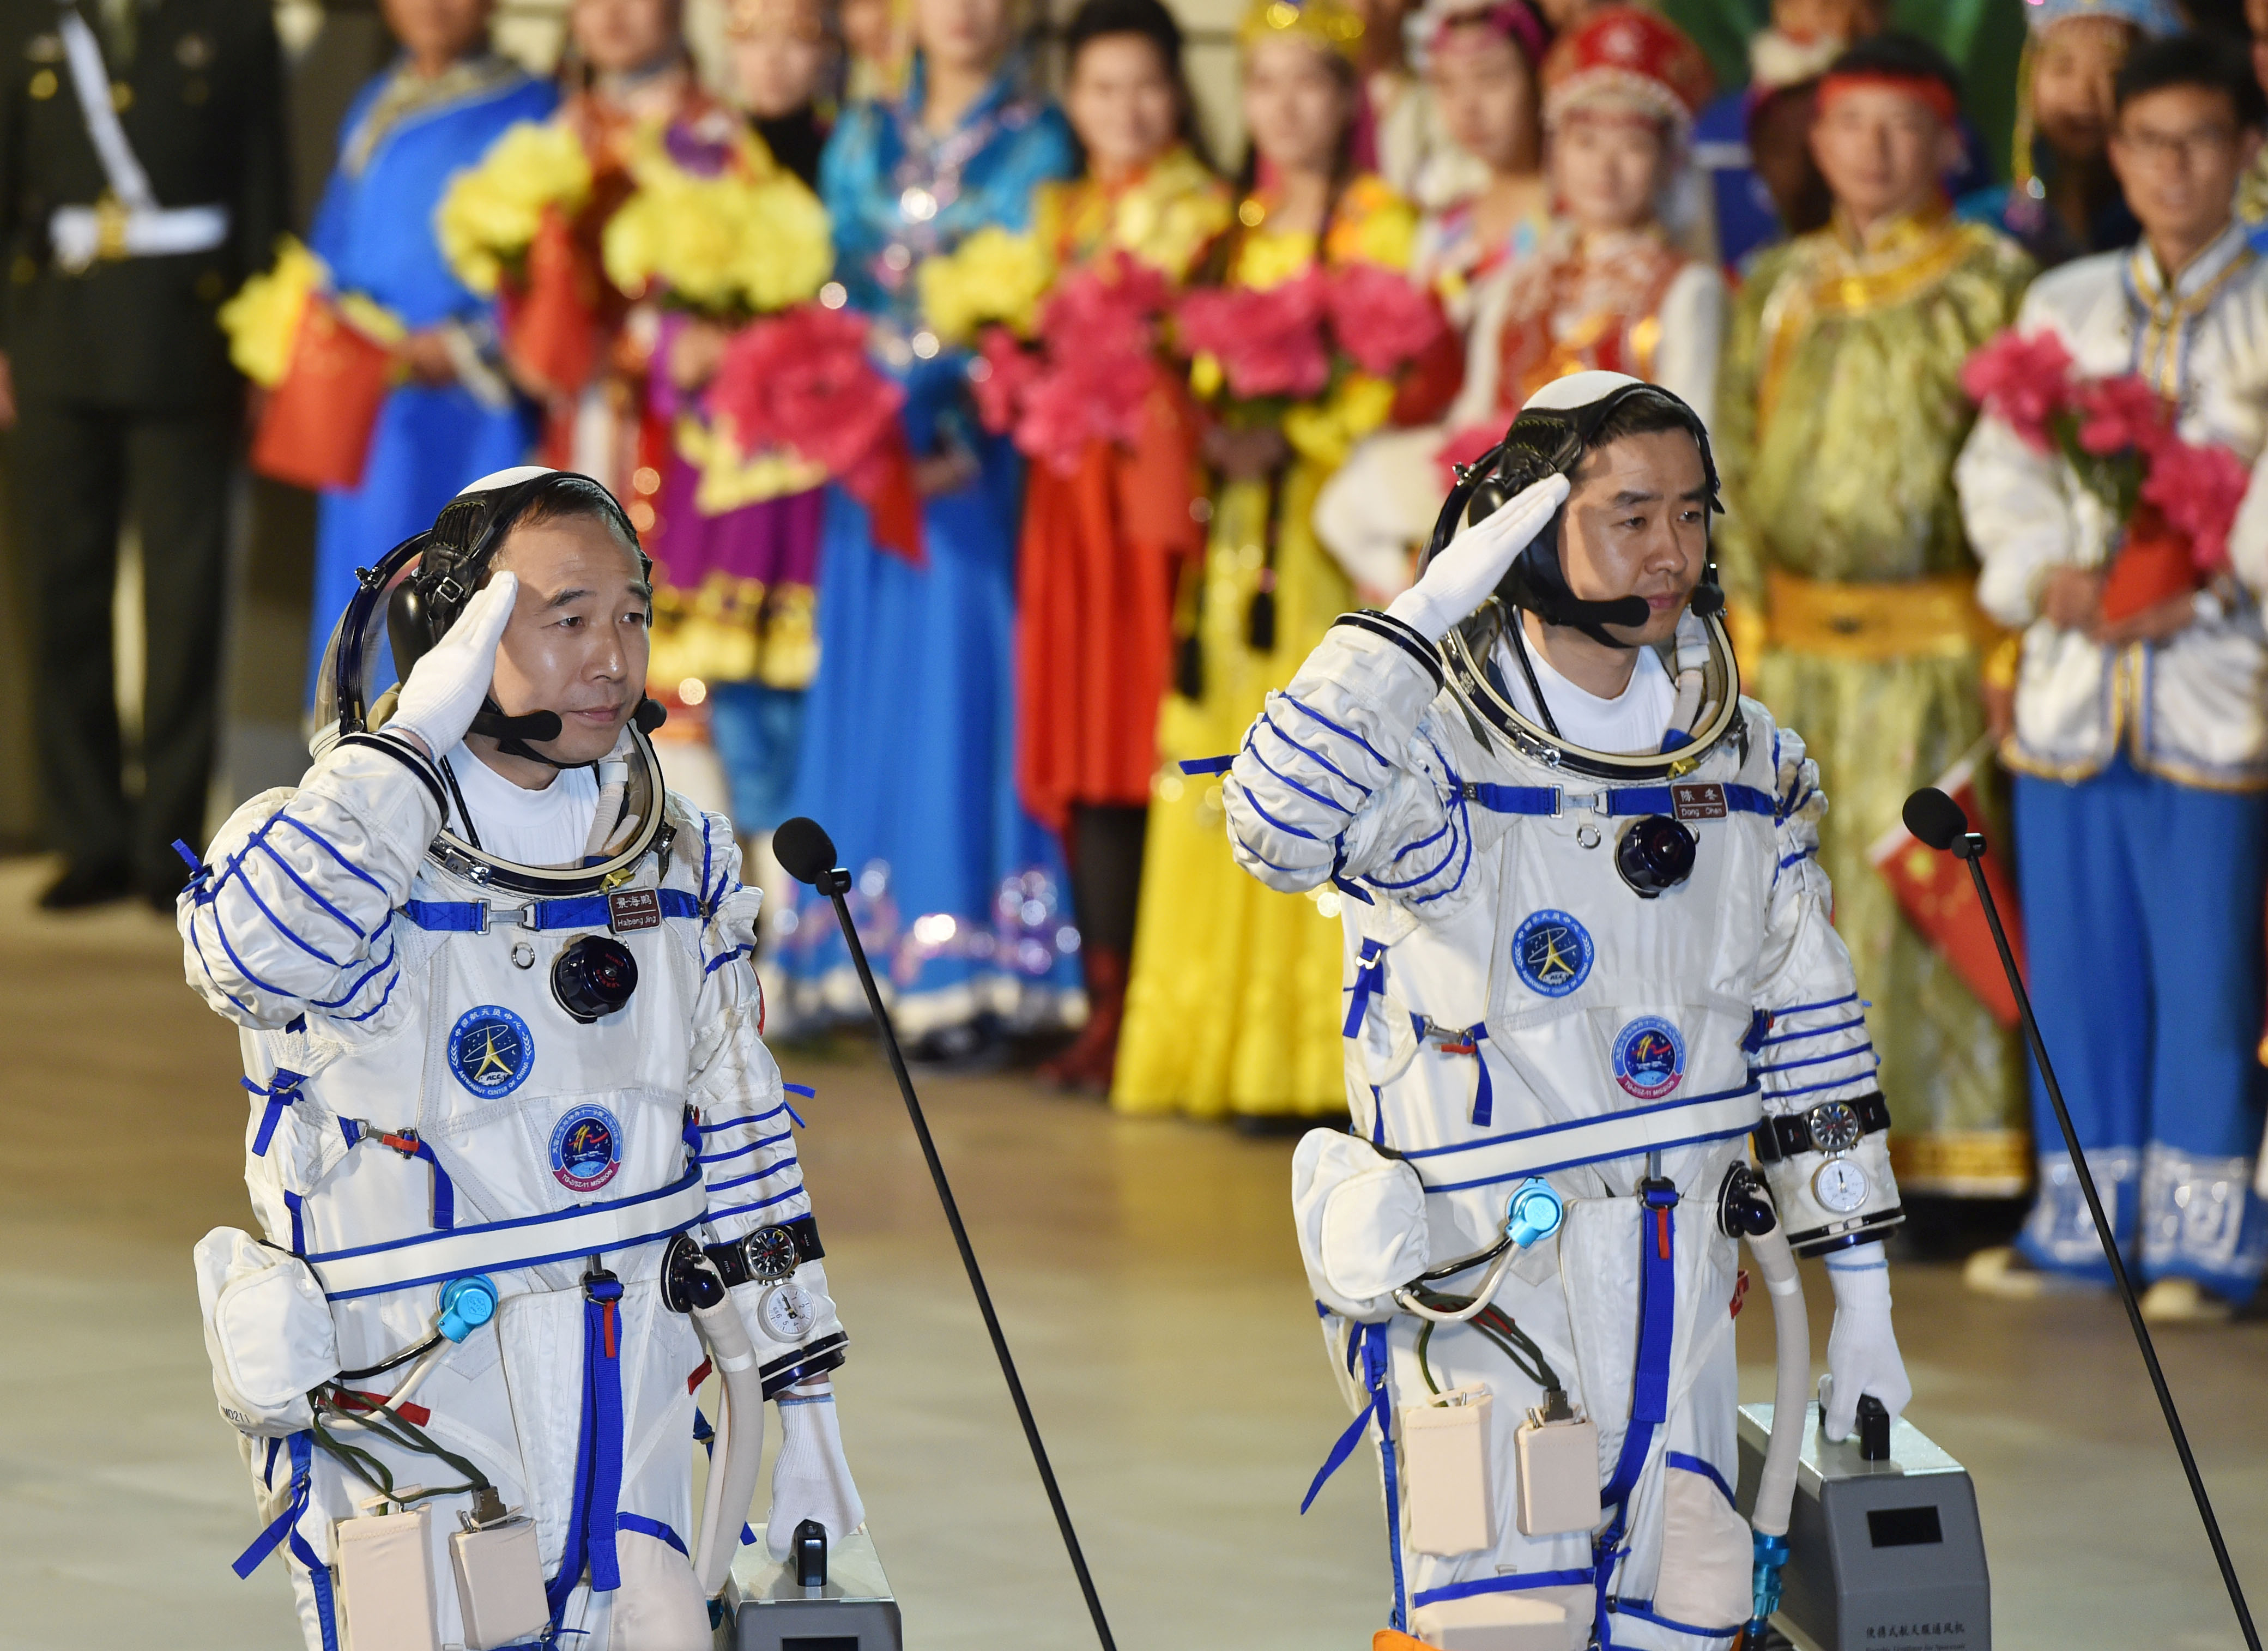 Chinese astronauts Jing Haipeng (L), Chen Dong salute before the launch of  Shenzhou-11 manned spacecraft, in Jiuquan, China, October 17, 2016. China Daily/via REUTERS ATTENTION EDITORS - THIS PICTURE WAS PROVIDED BY A THIRD PARTY. EDITORIAL USE ONLY. CHINA OUT. NO COMMERCIAL OR EDITORIAL SALES IN CHINA.    REUTERS/Stringer CHINA OUT. NO COMMERCIAL OR EDITORIAL SALES IN CHINA - RTX2P2X7